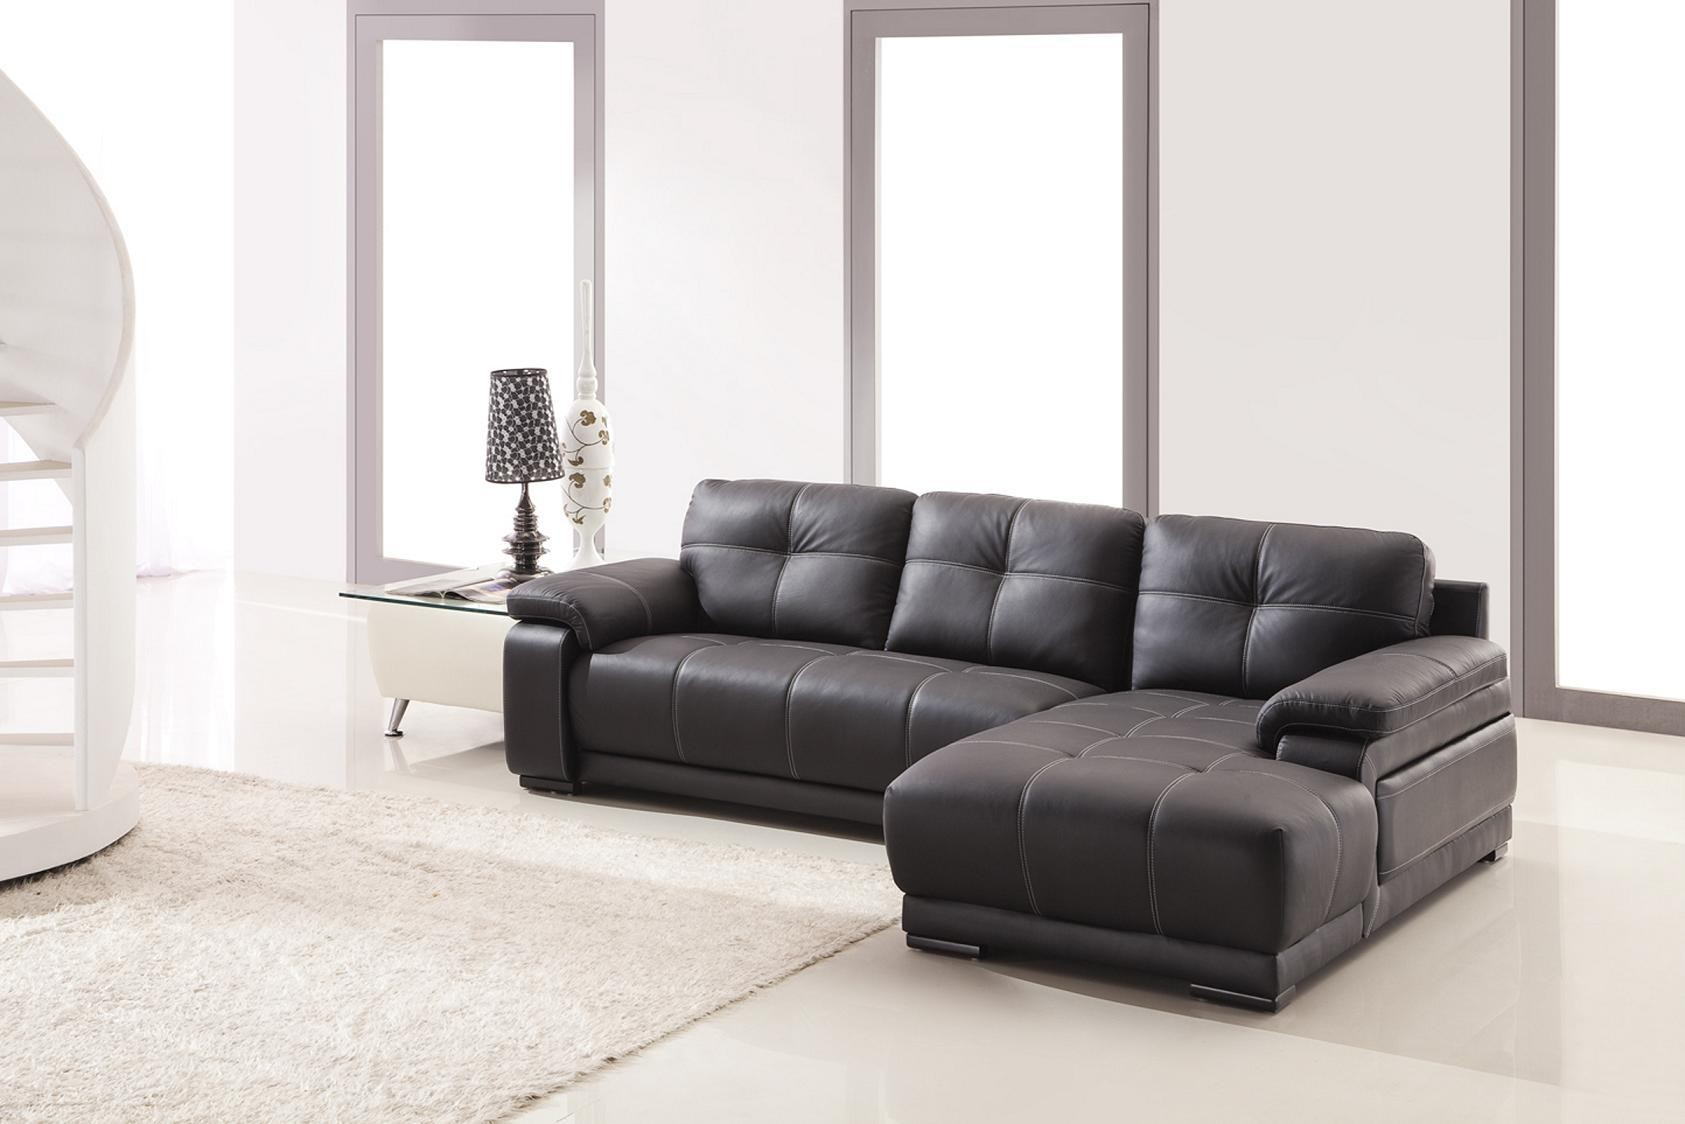 If You Want To Know The Best Sofa Option For Your Home Identify Height Of Tallest Person In Family A Minimal Seat Depth And Back Are